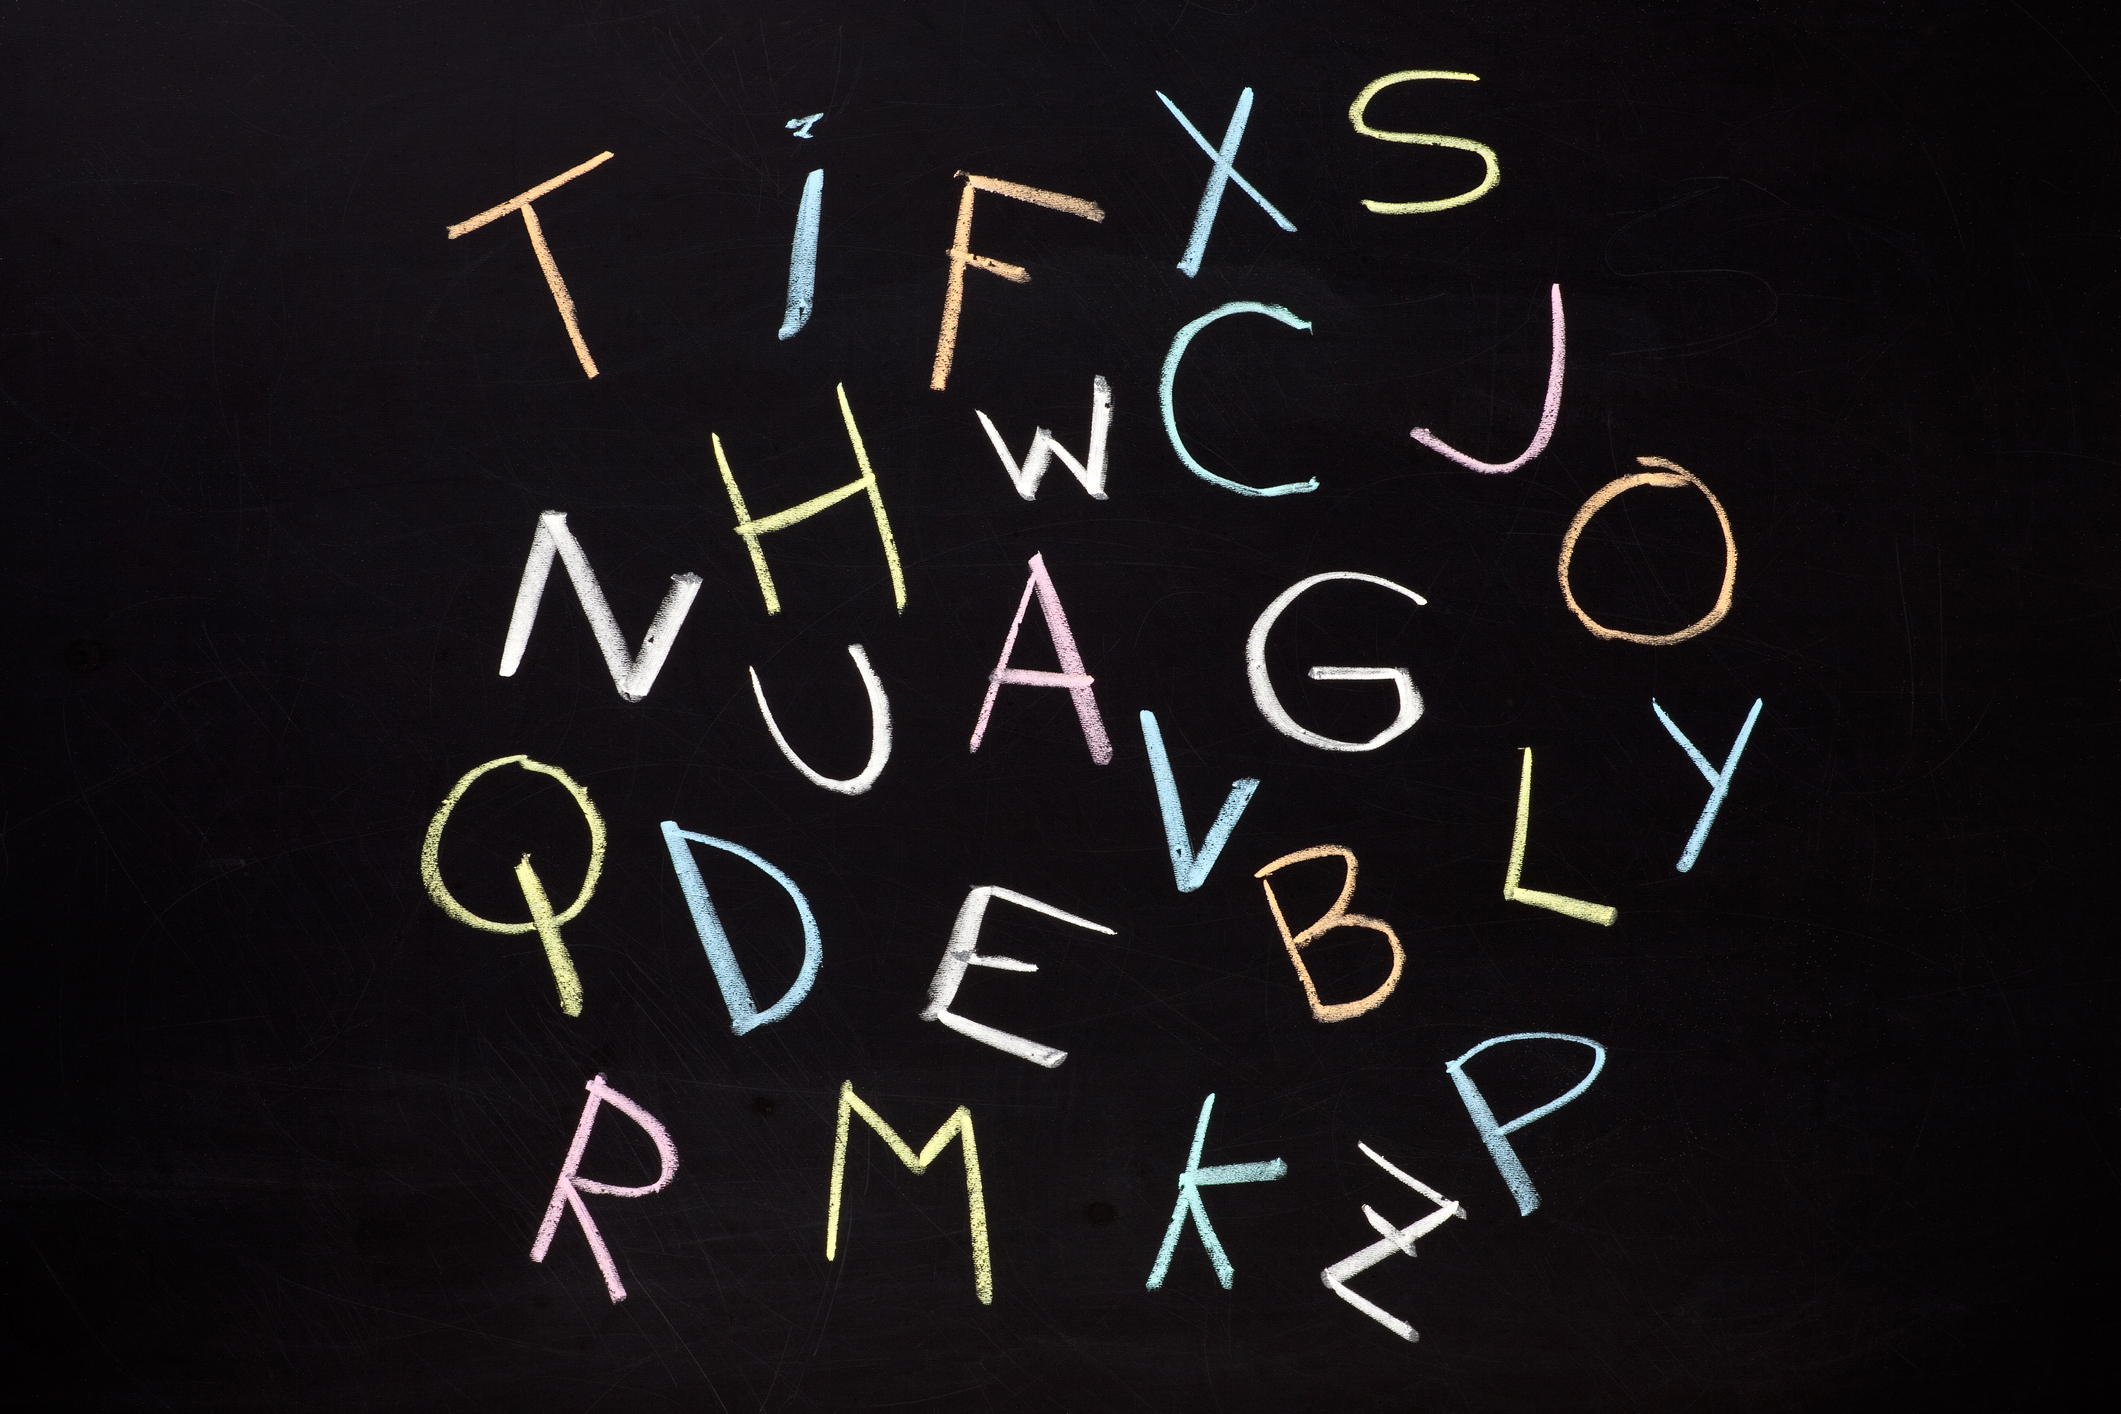 The letters of the alphabet drawn in blackboard without any particular order